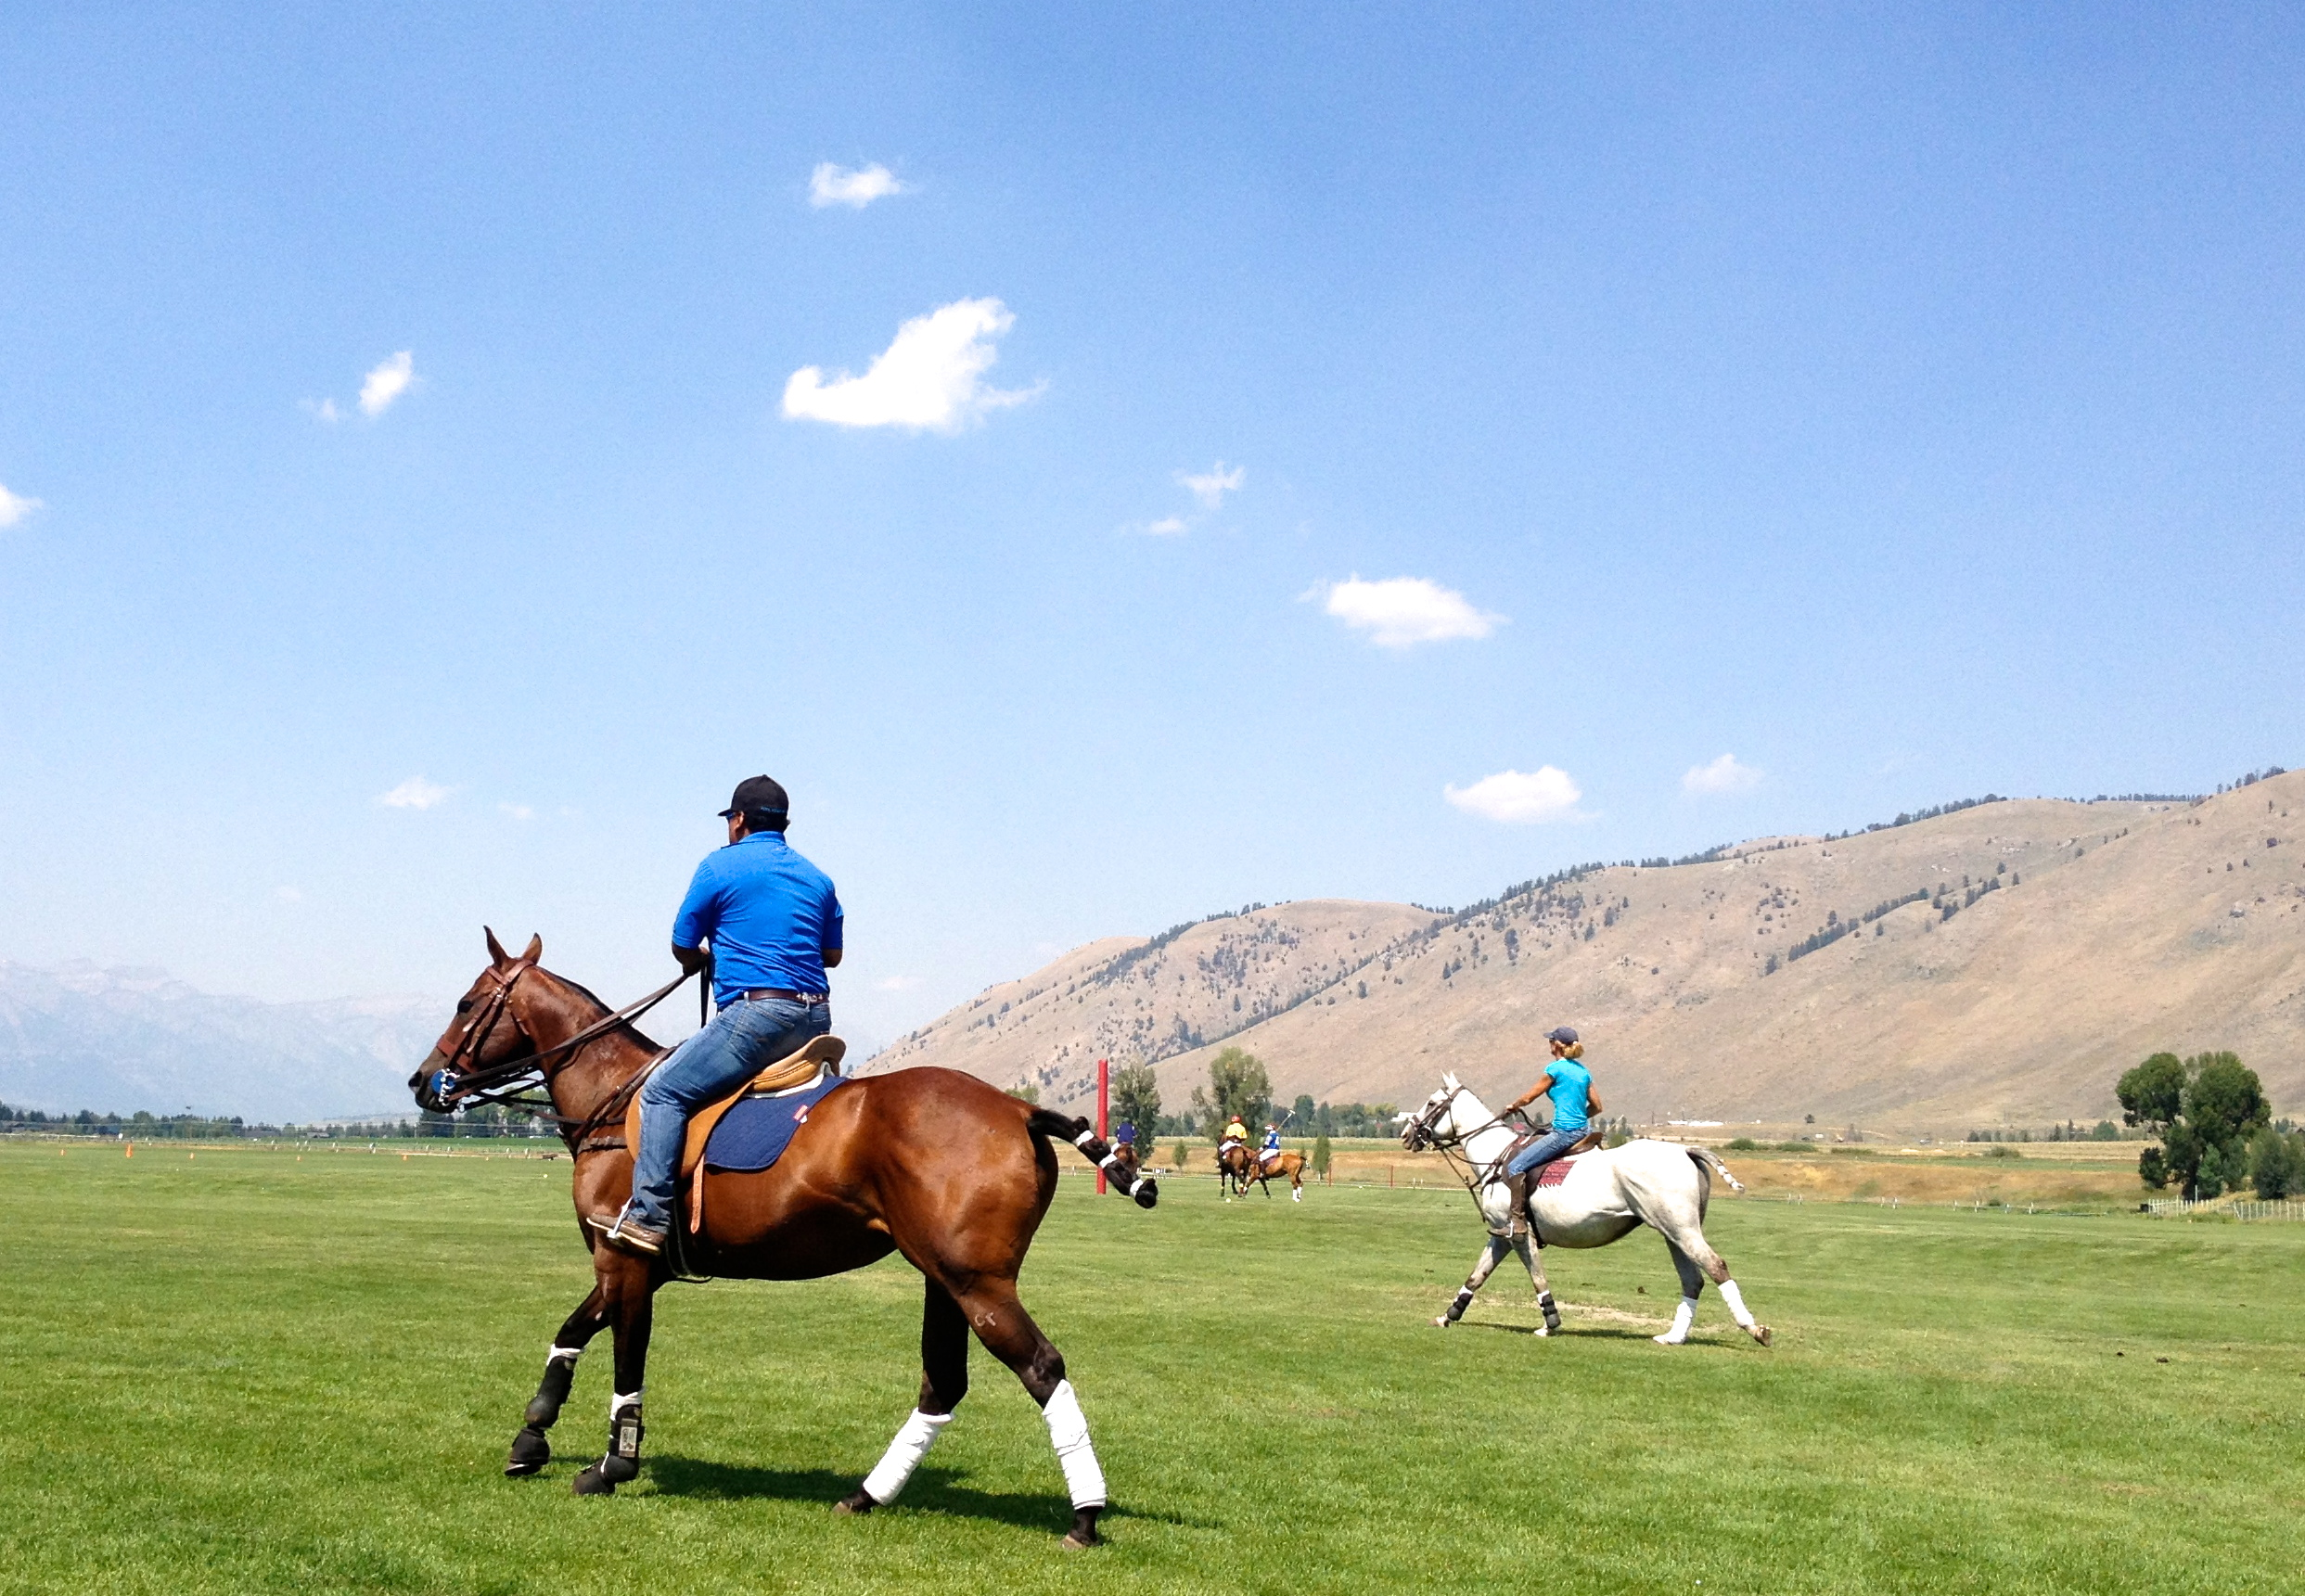 Teton Polo - a whole other world (and worldly backdrop)